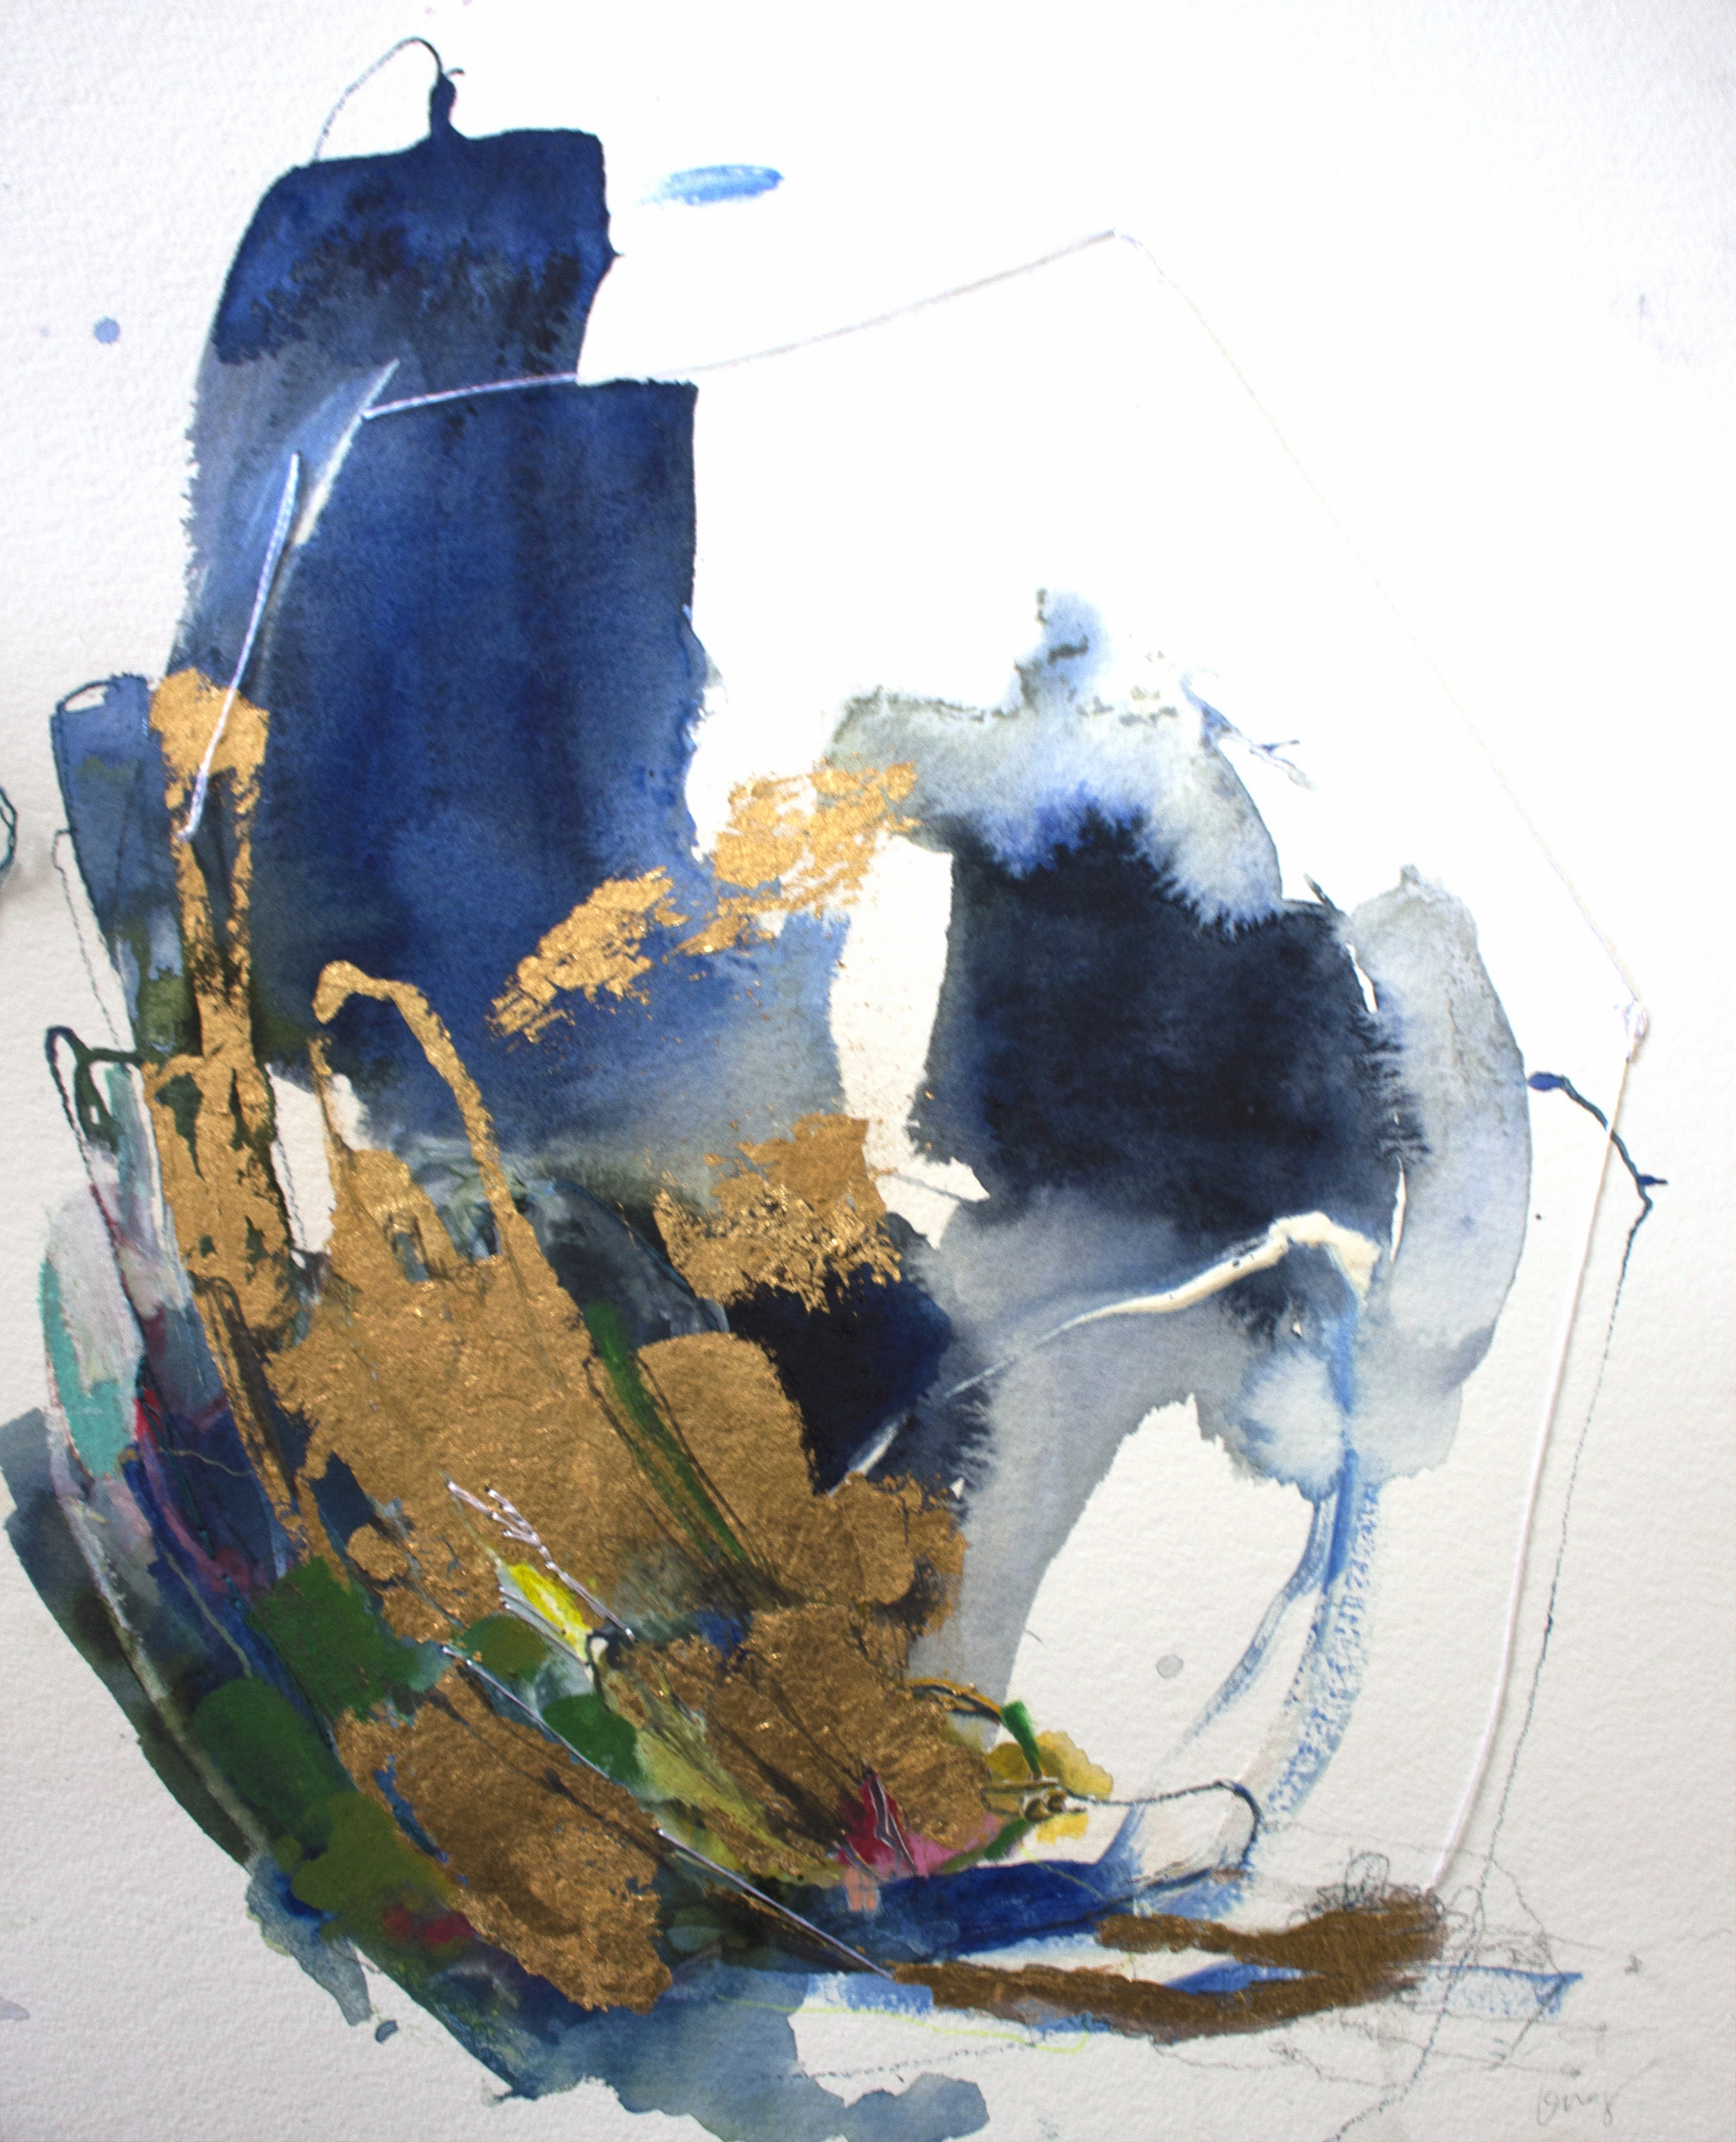 TUMBLING WAVE #6 12 in. x 16 in. acrylic, pencil, stitching, gold leaf on paper